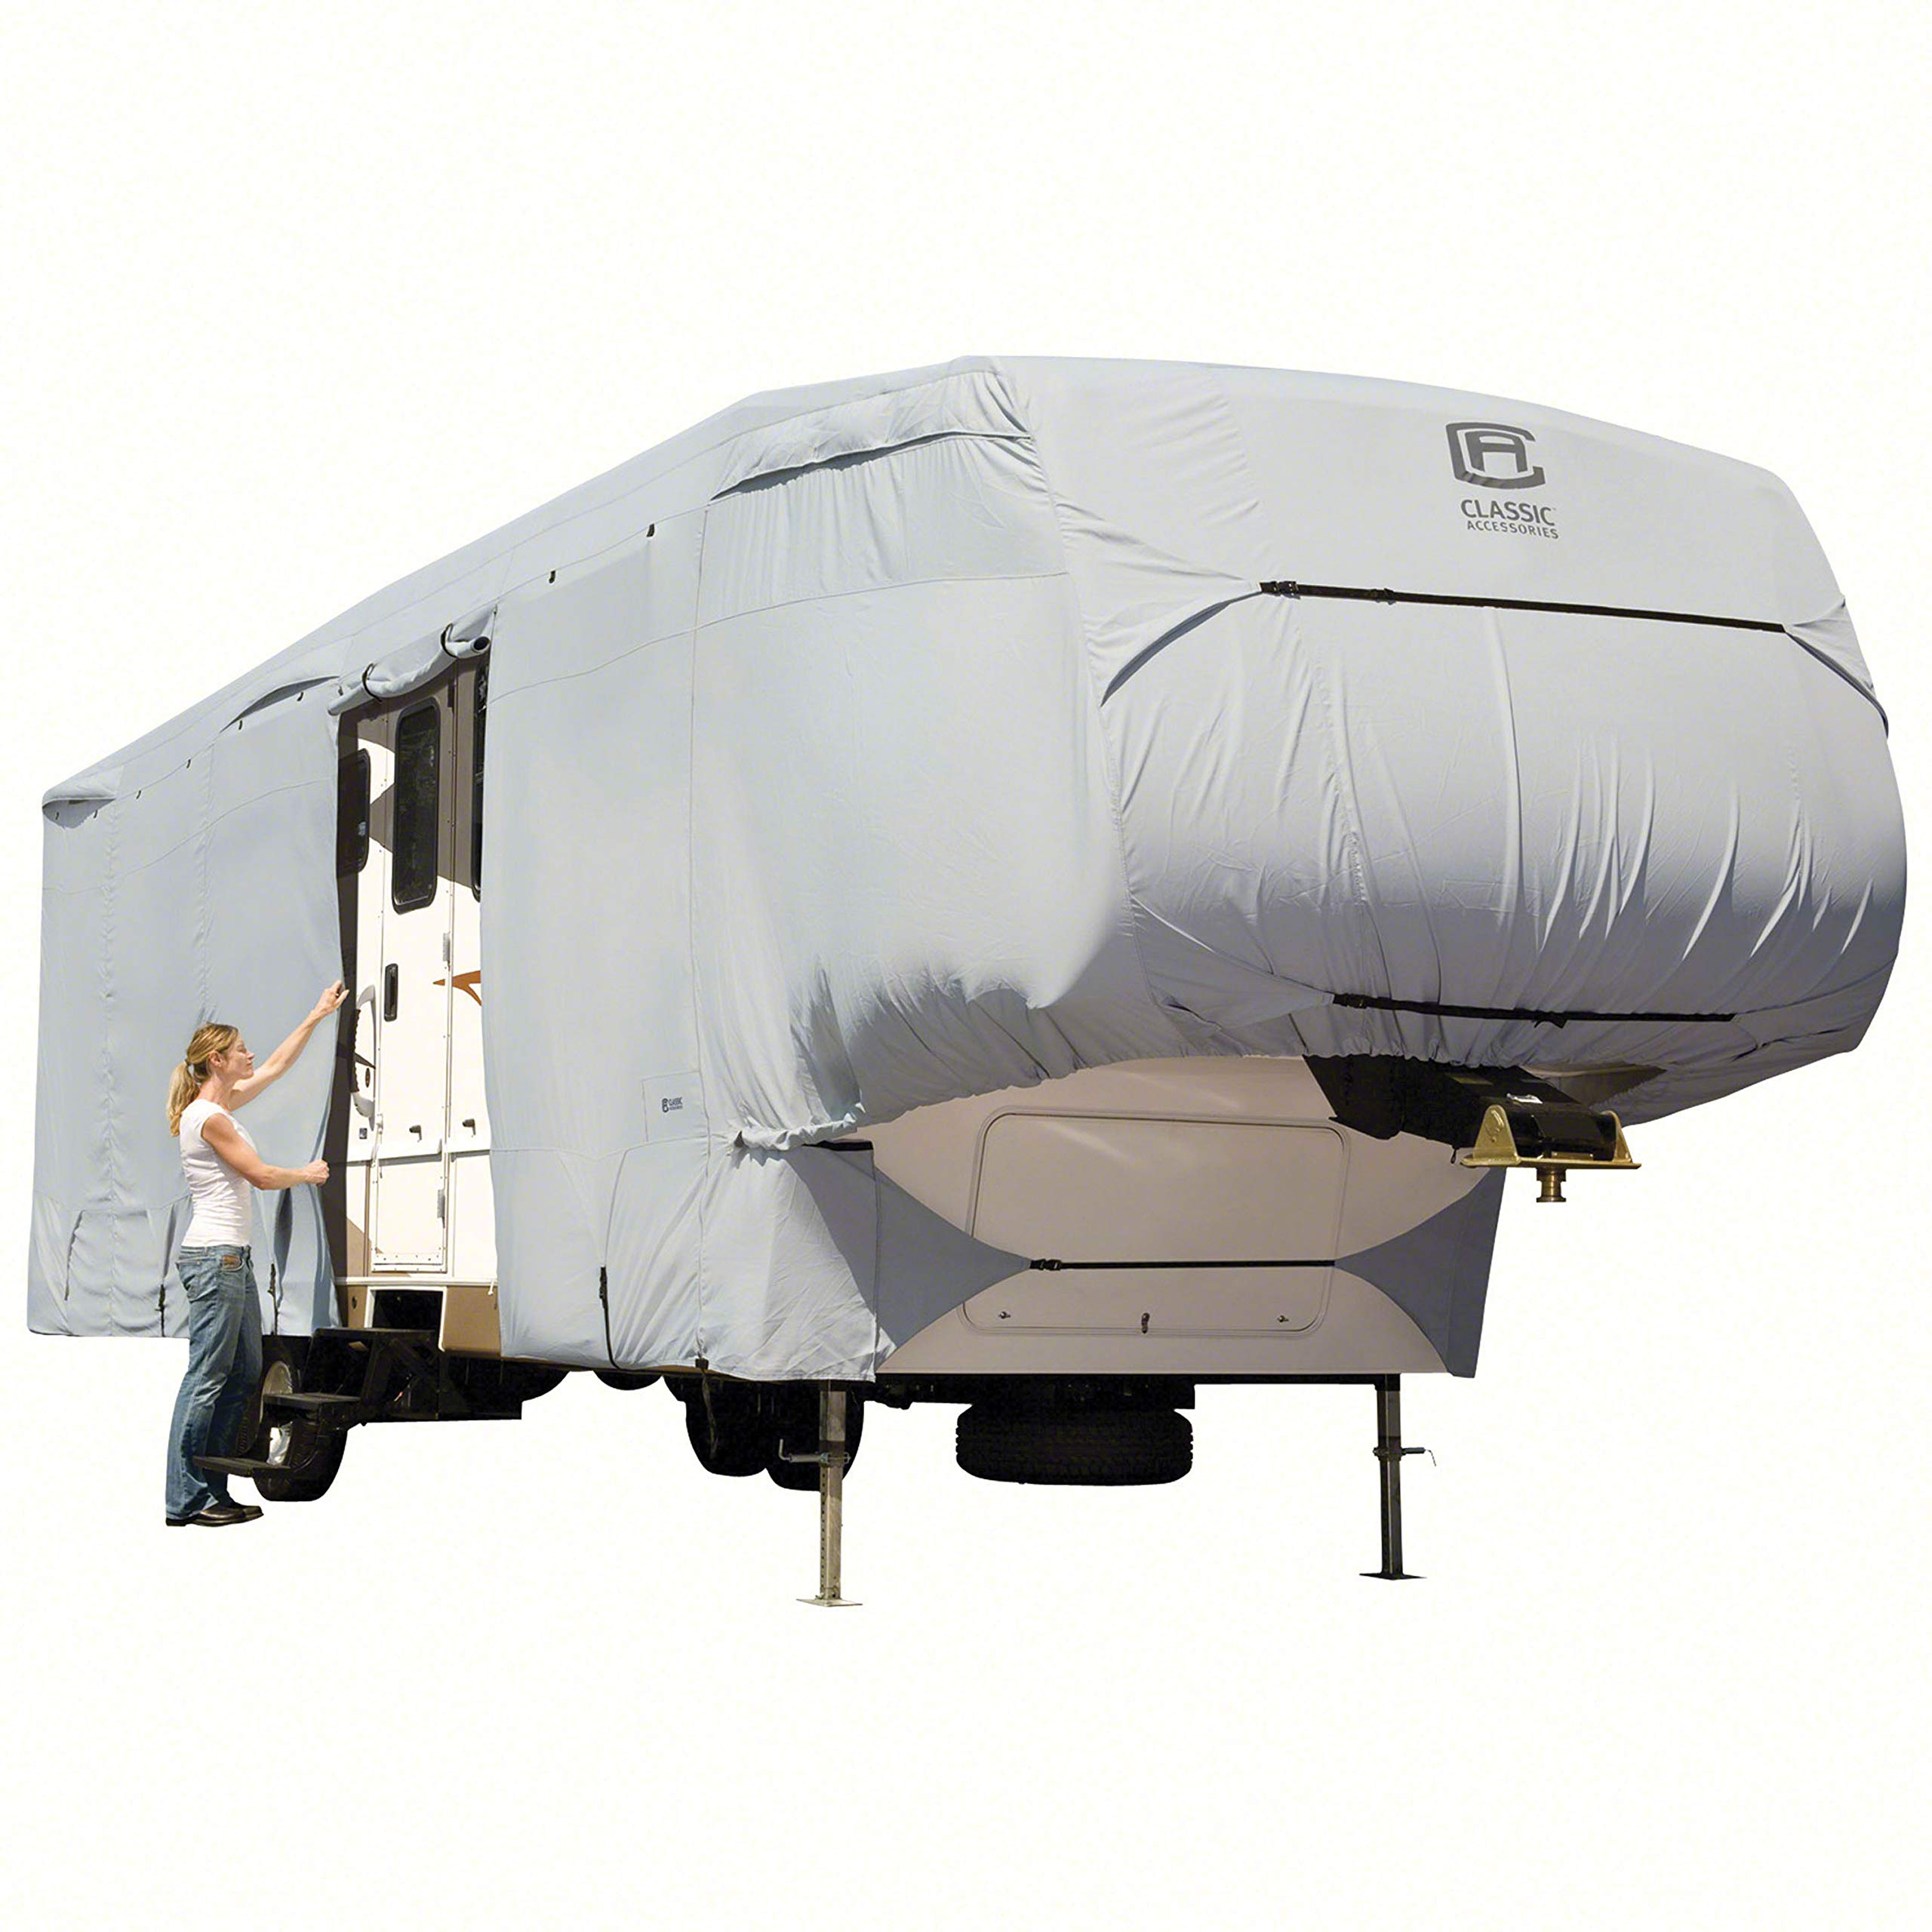 Classic Accessories OverDrive PermaPro Heavy Duty Cover for 37' to 40' Extra Tall 5th Wheel Trailers by Classic Accessories